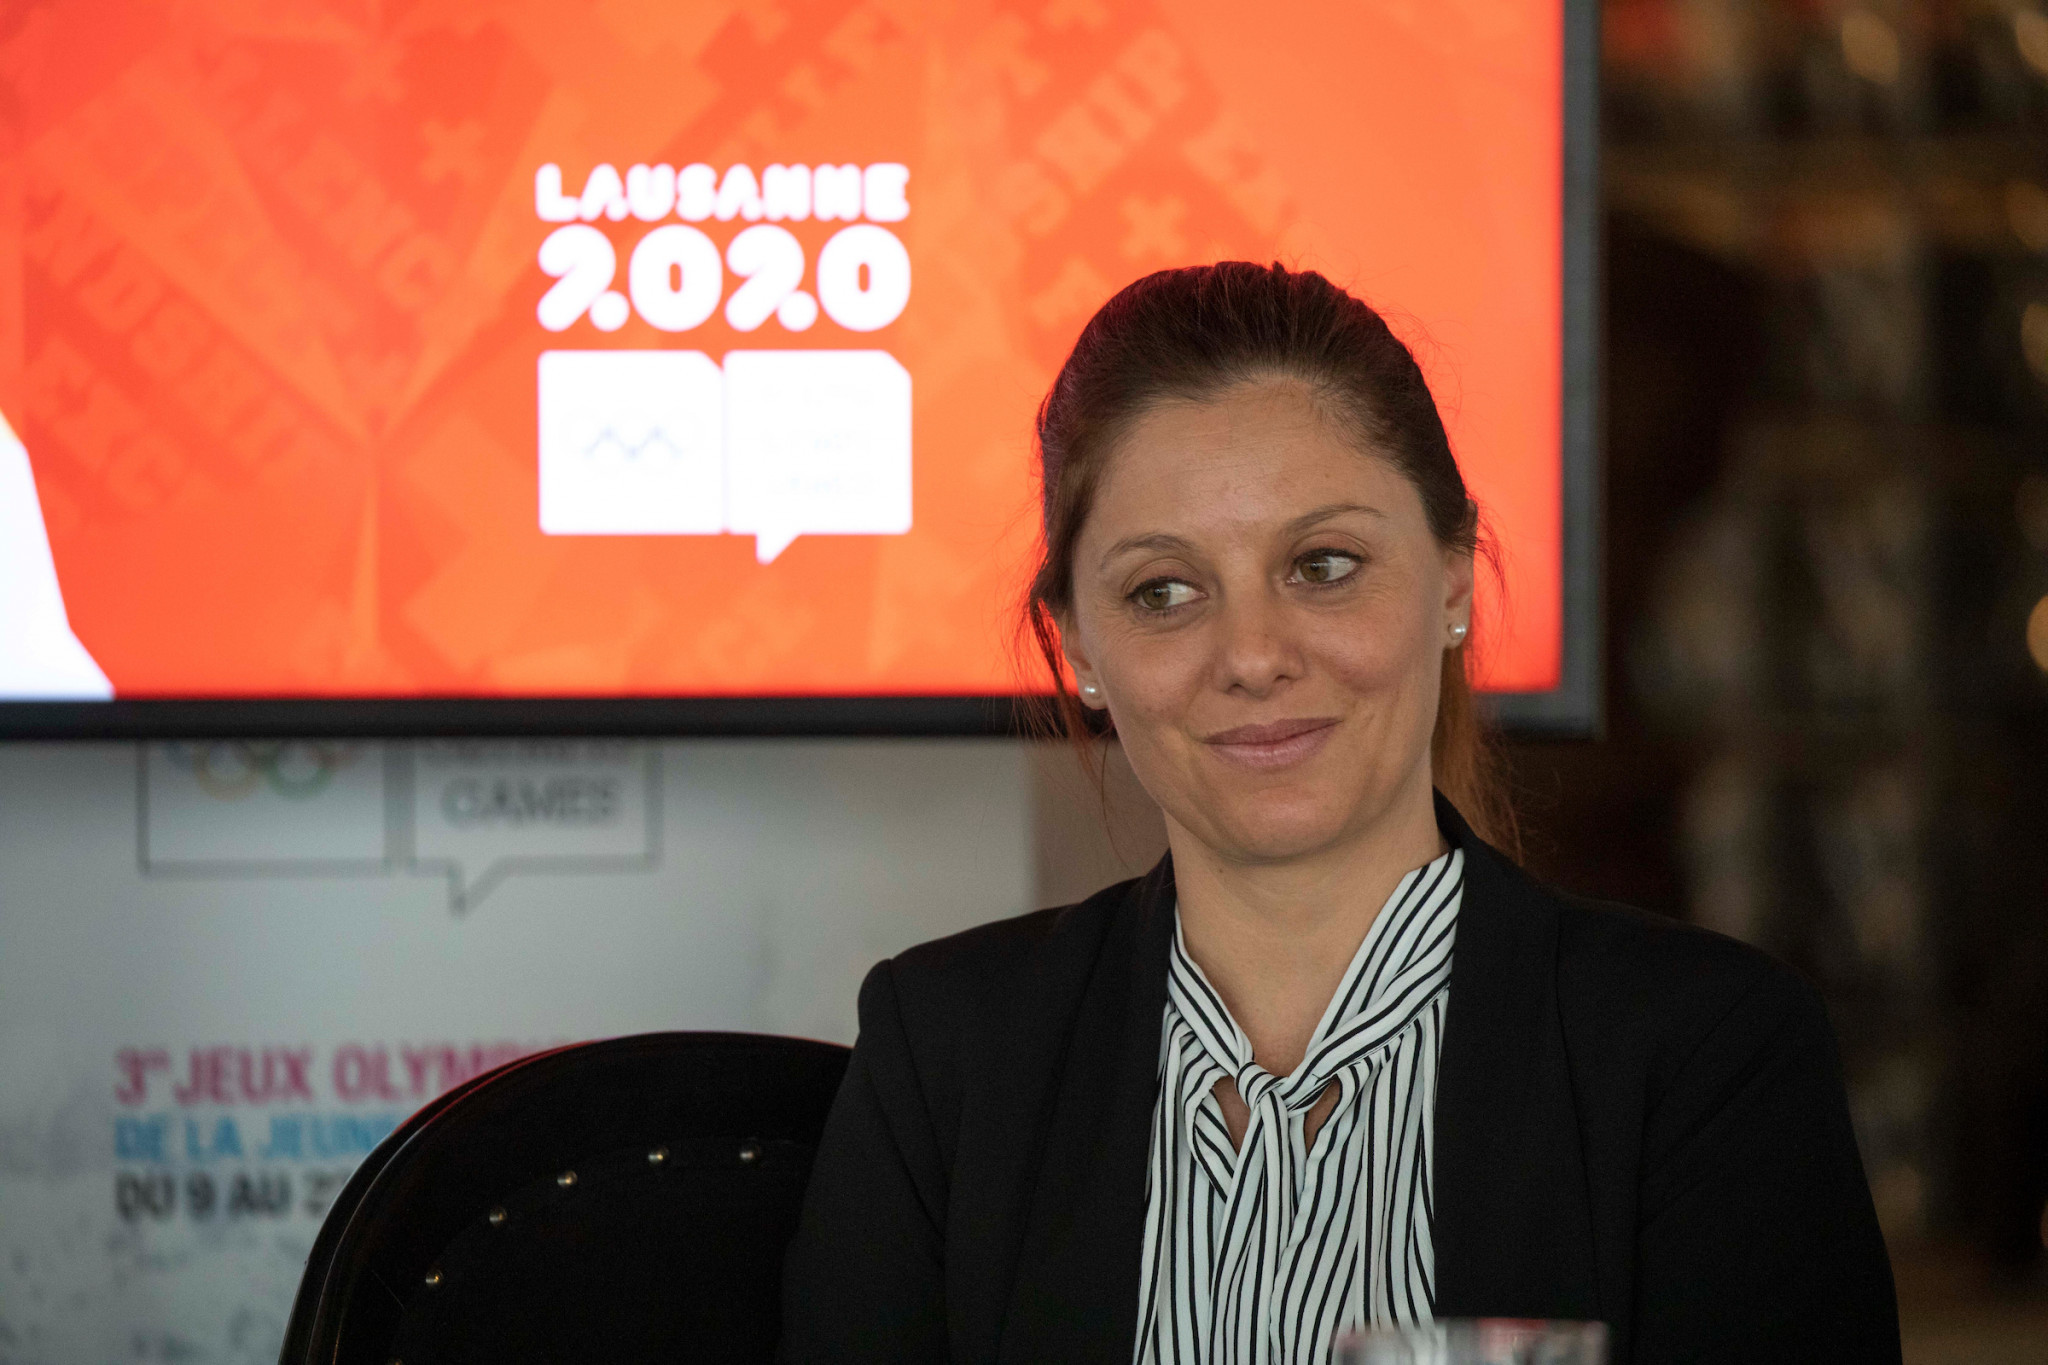 Virginie Faivre was appointed to replace the late Patrick Baumann as Lausanne 2020 President ©IOC